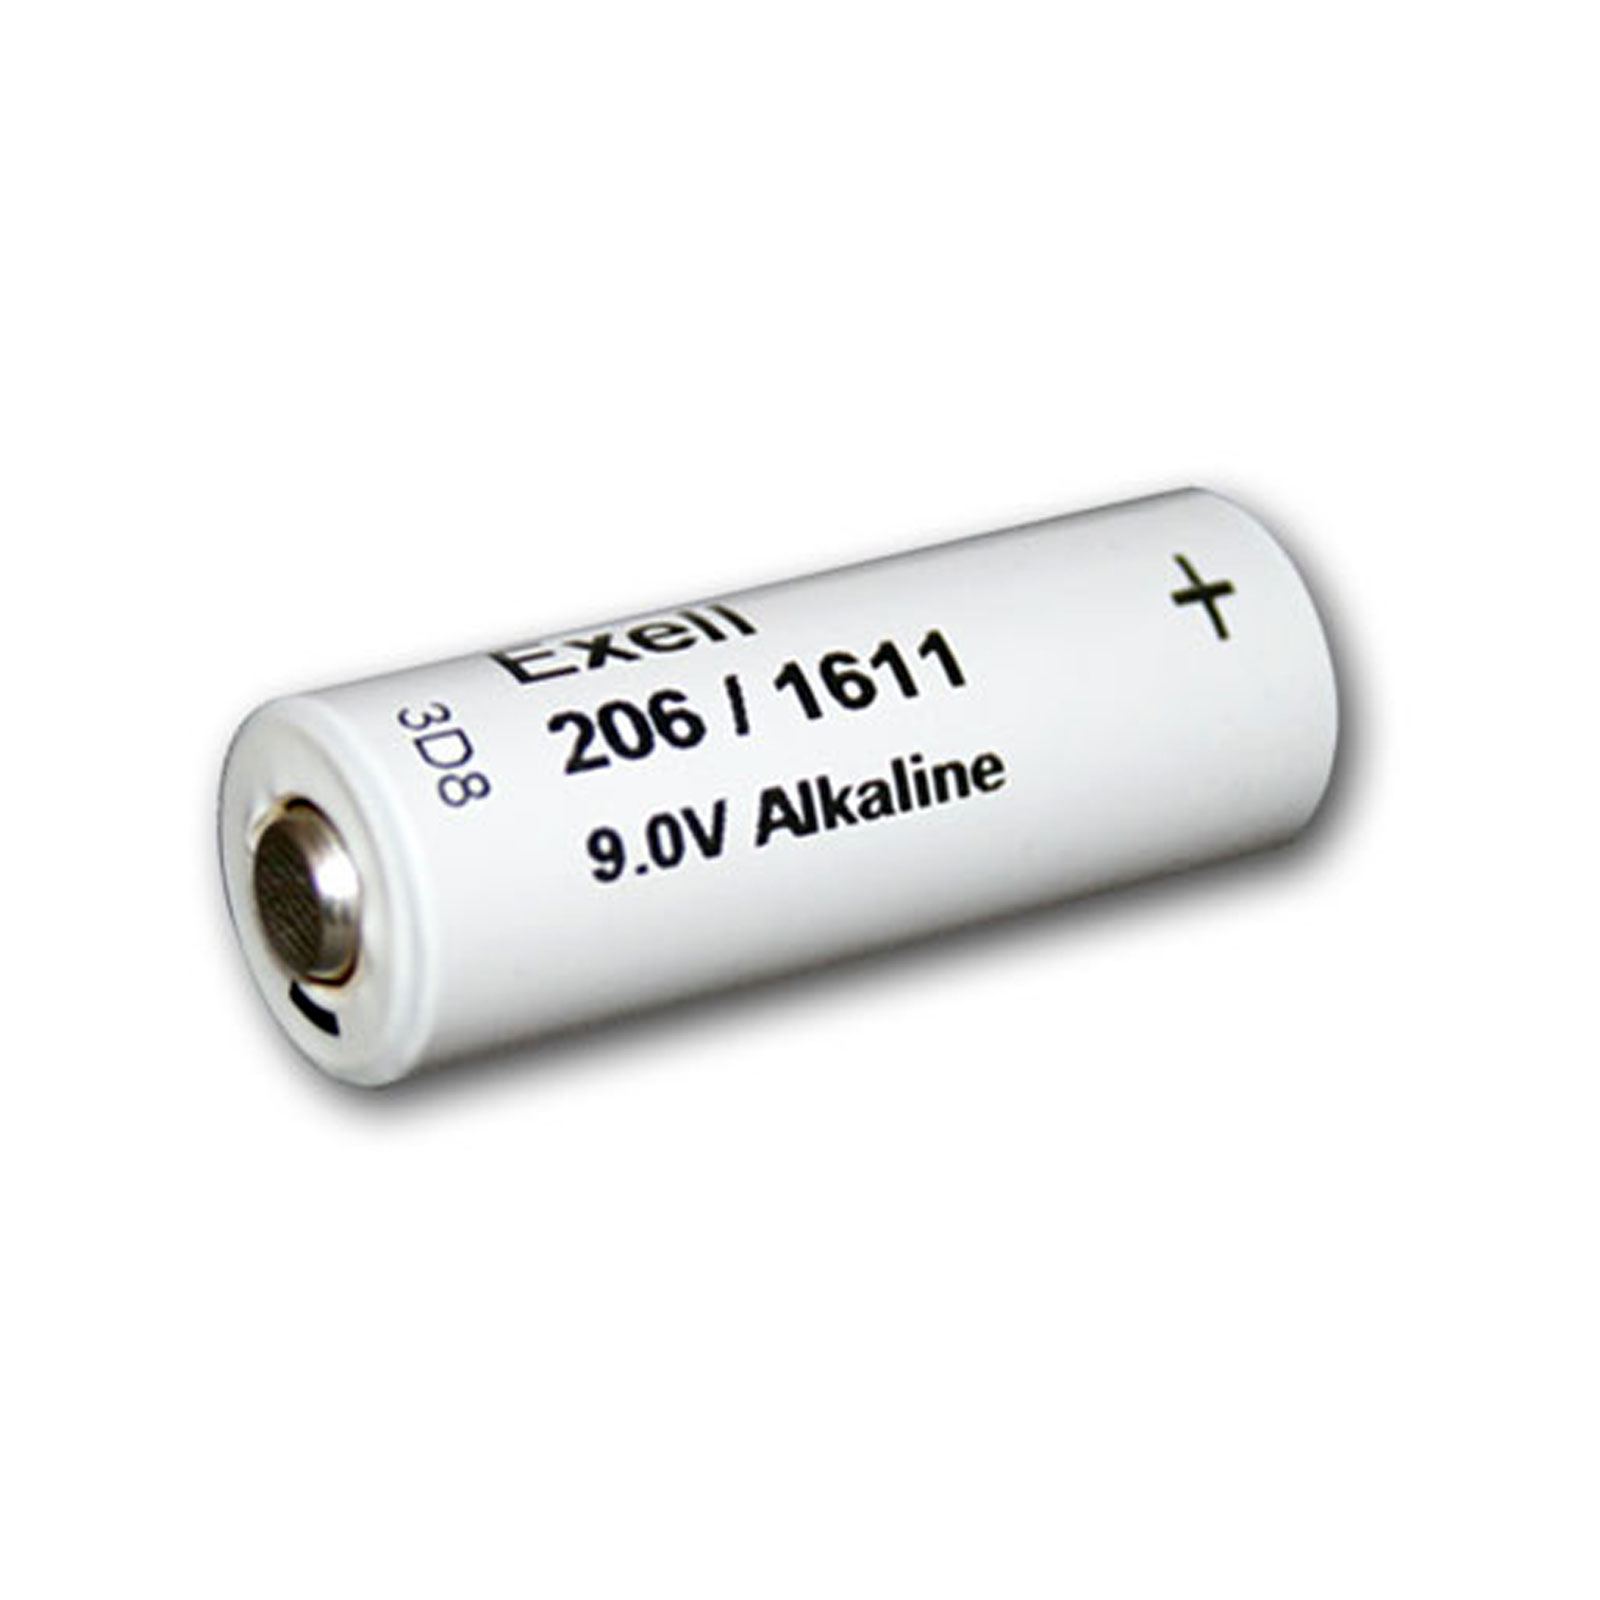 exell battery 206a replaces duracell tr 126 eveready 206 mallory 206 usa ship ebay. Black Bedroom Furniture Sets. Home Design Ideas